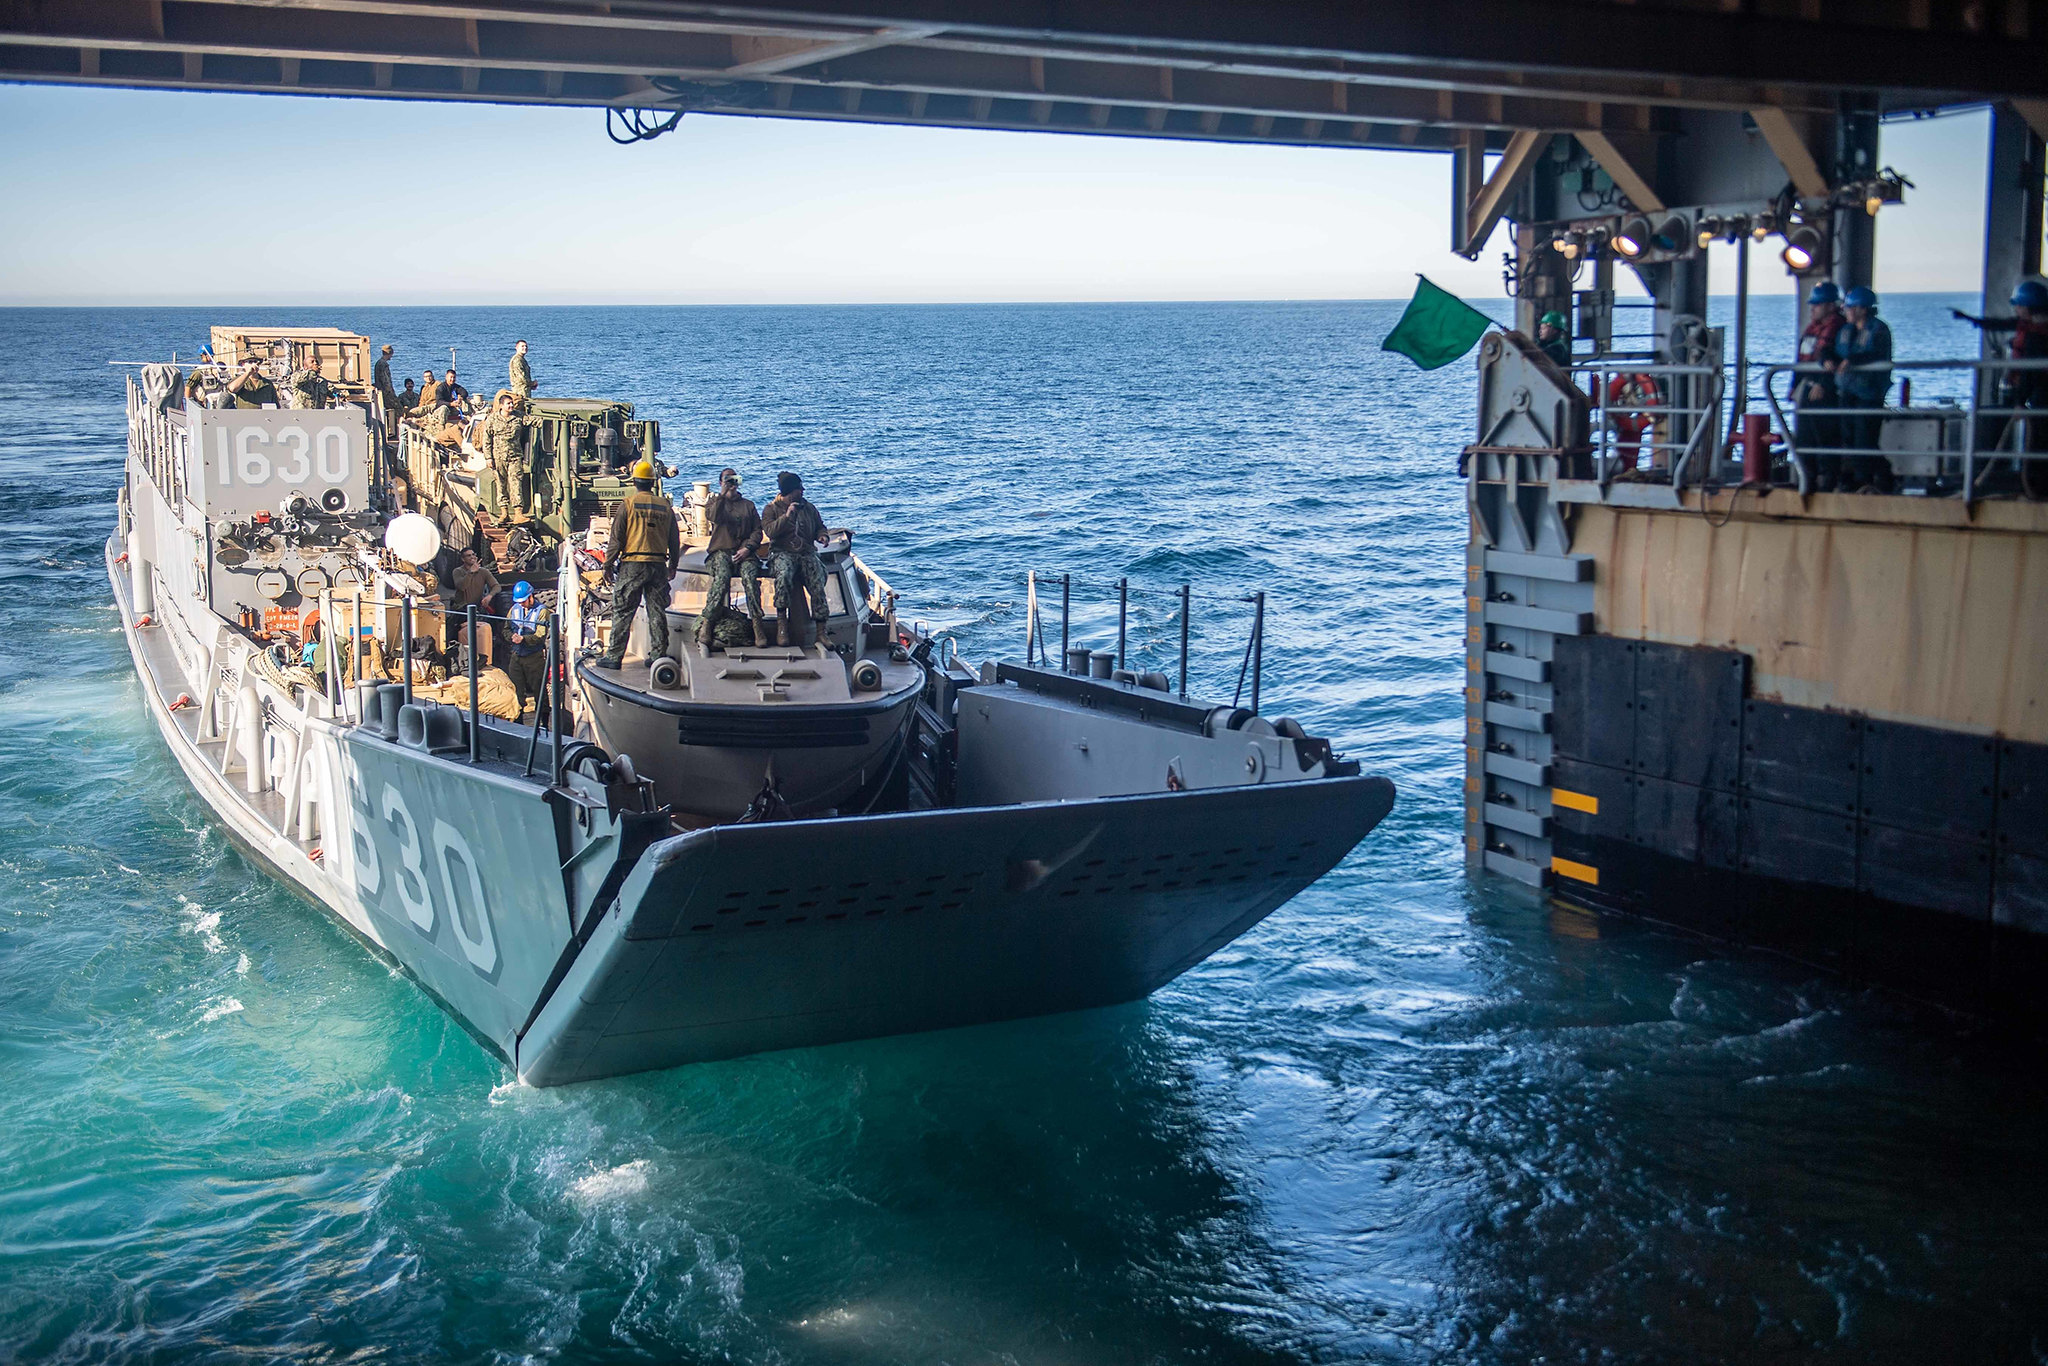 191124-N-HD110-1039\r\rPACIFIC OCEAN (Nov. 24, 2019) Landing Craft, Utility 1630, attached to Assault Craft Unit (ACU) 1, exits the well deck of the amphibious dock landing ship USS Harpers Ferry (LSD 49). Sailors and Marines of the Boxer Amphibious Ready Group (ARG) and the 11th Marine Expeditionary Unit (MEU) are embarked on Harpers Ferry for a regularly-scheduled deployment. (U.S. Navy photo by Mass Communication Specialist 3rd Class Danielle A. Baker)